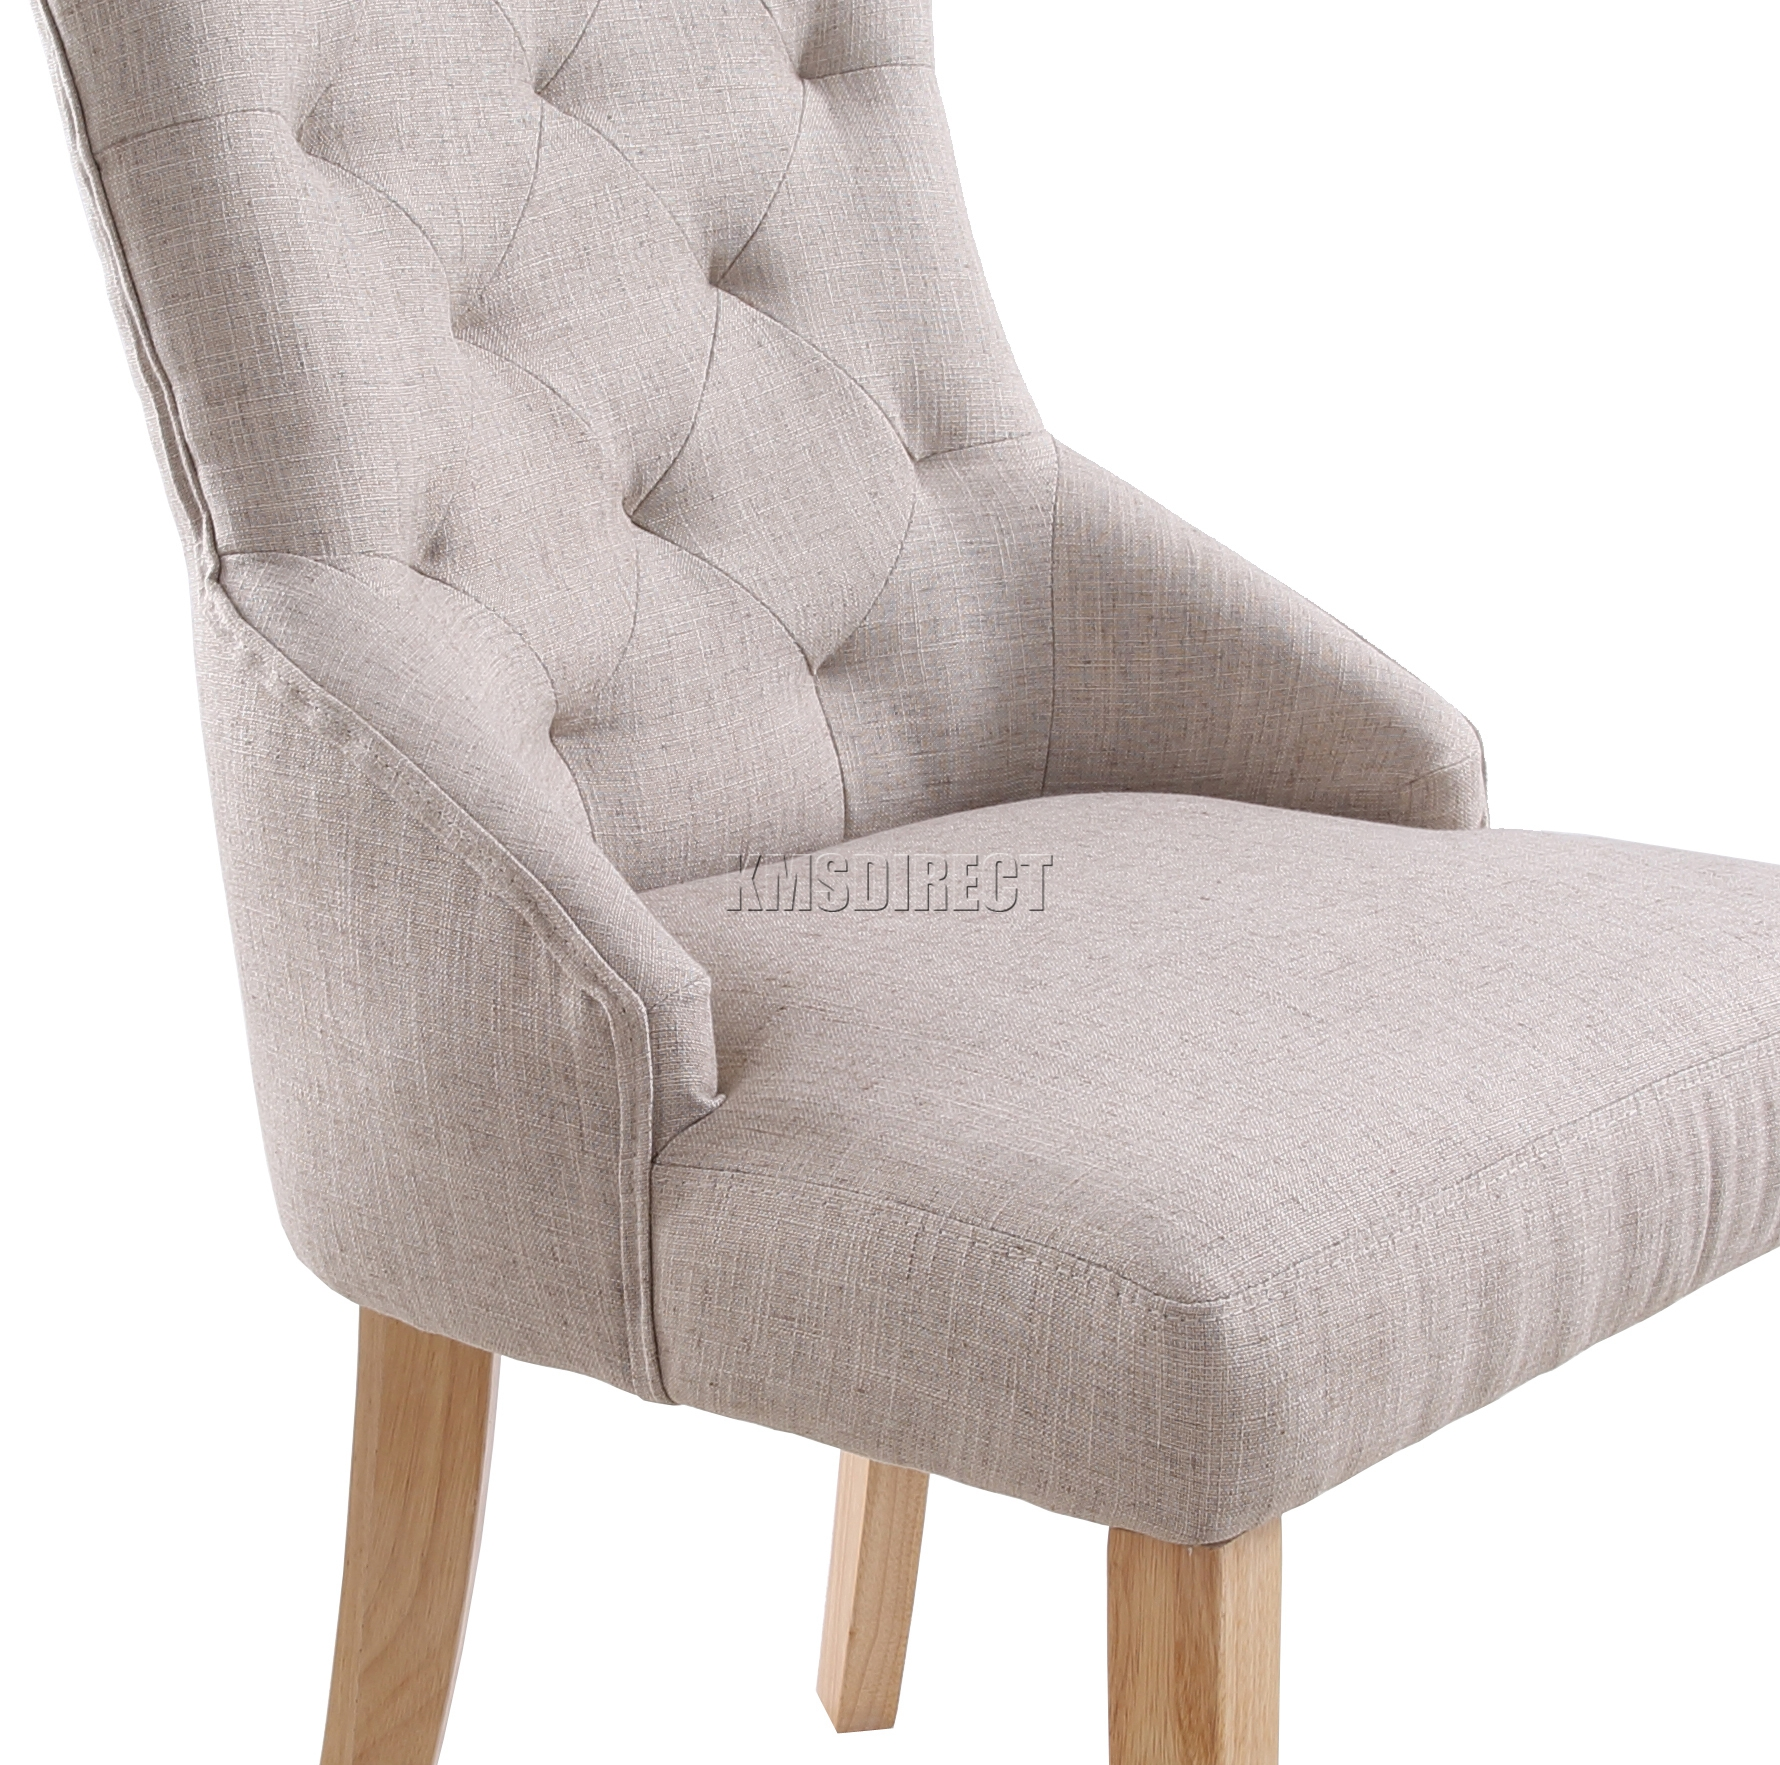 Linen Tufted Dining Chairs Foxhunter New Cream Linen Fabric Dining Chairs Scoop